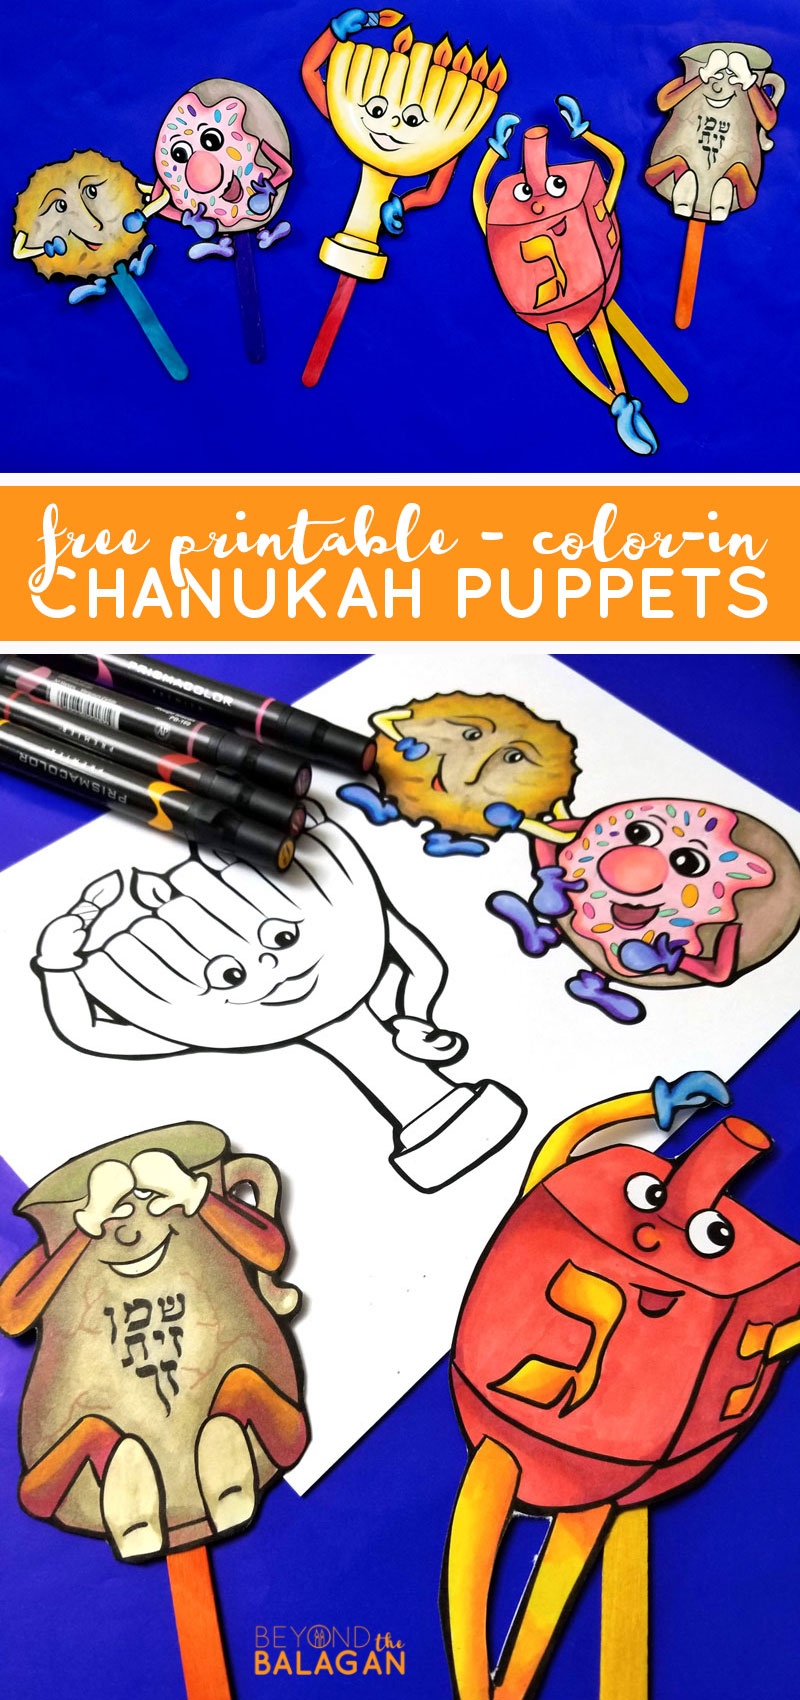 Click to download your free prinable Chanukah puppets coloring pages for Hanukkah! This fun Hannukah paper craft for kids is also a great teaching tools for the Jewish holidays.